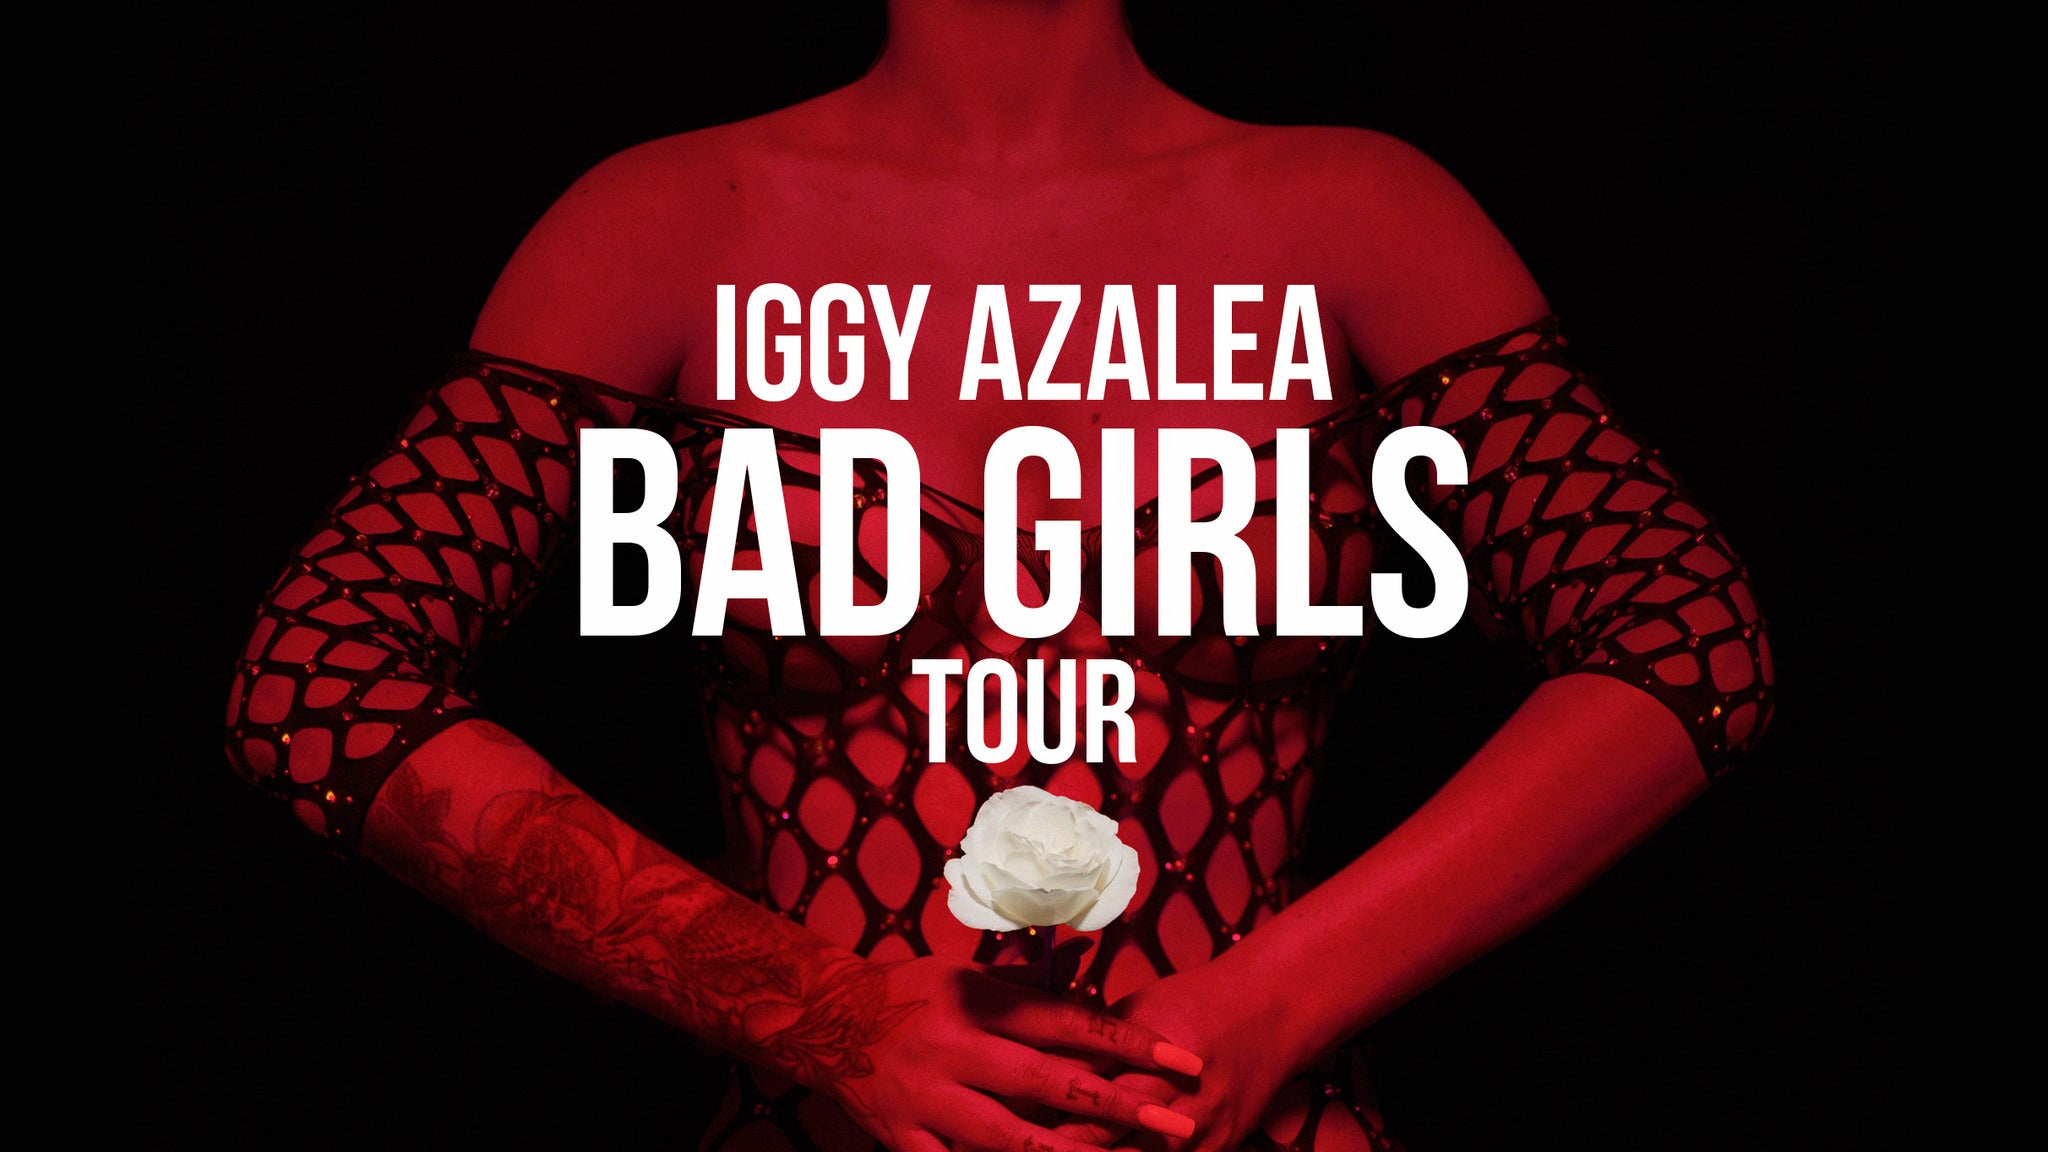 Iggy Azalea: Bad Girls Tour